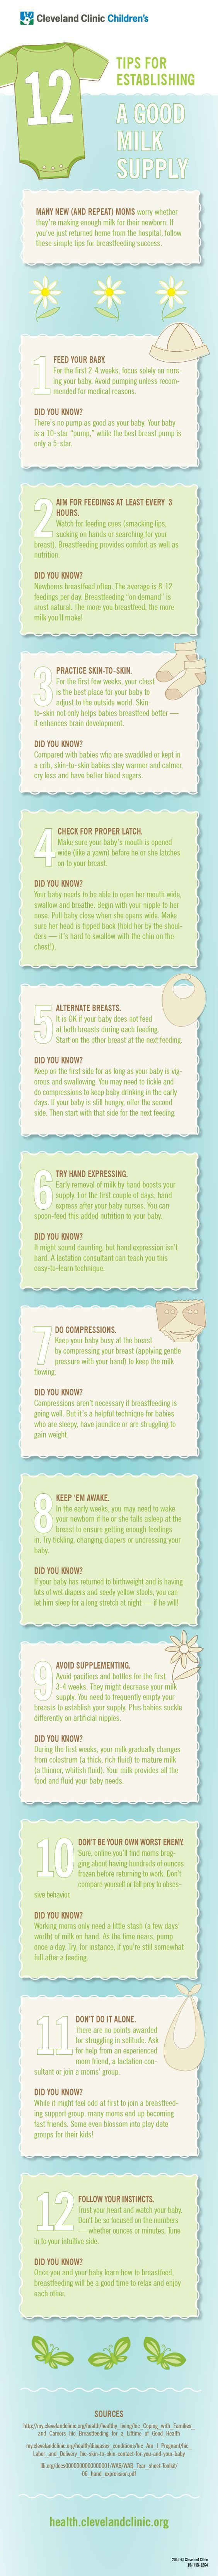 12 Tips for Establishing a Good Breast Milk Supply #infographic #breastfeeding